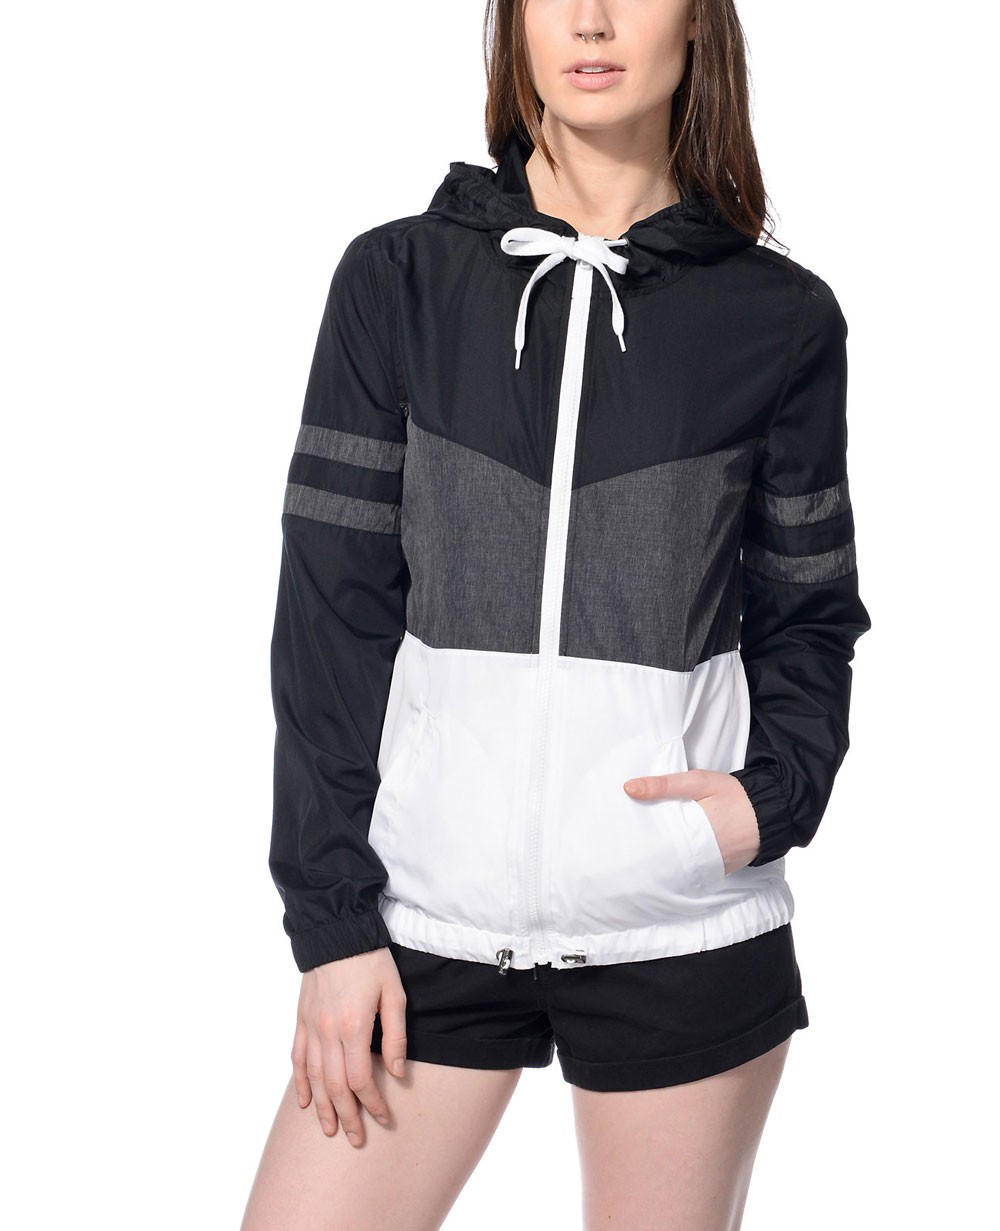 Pullover jackets for women